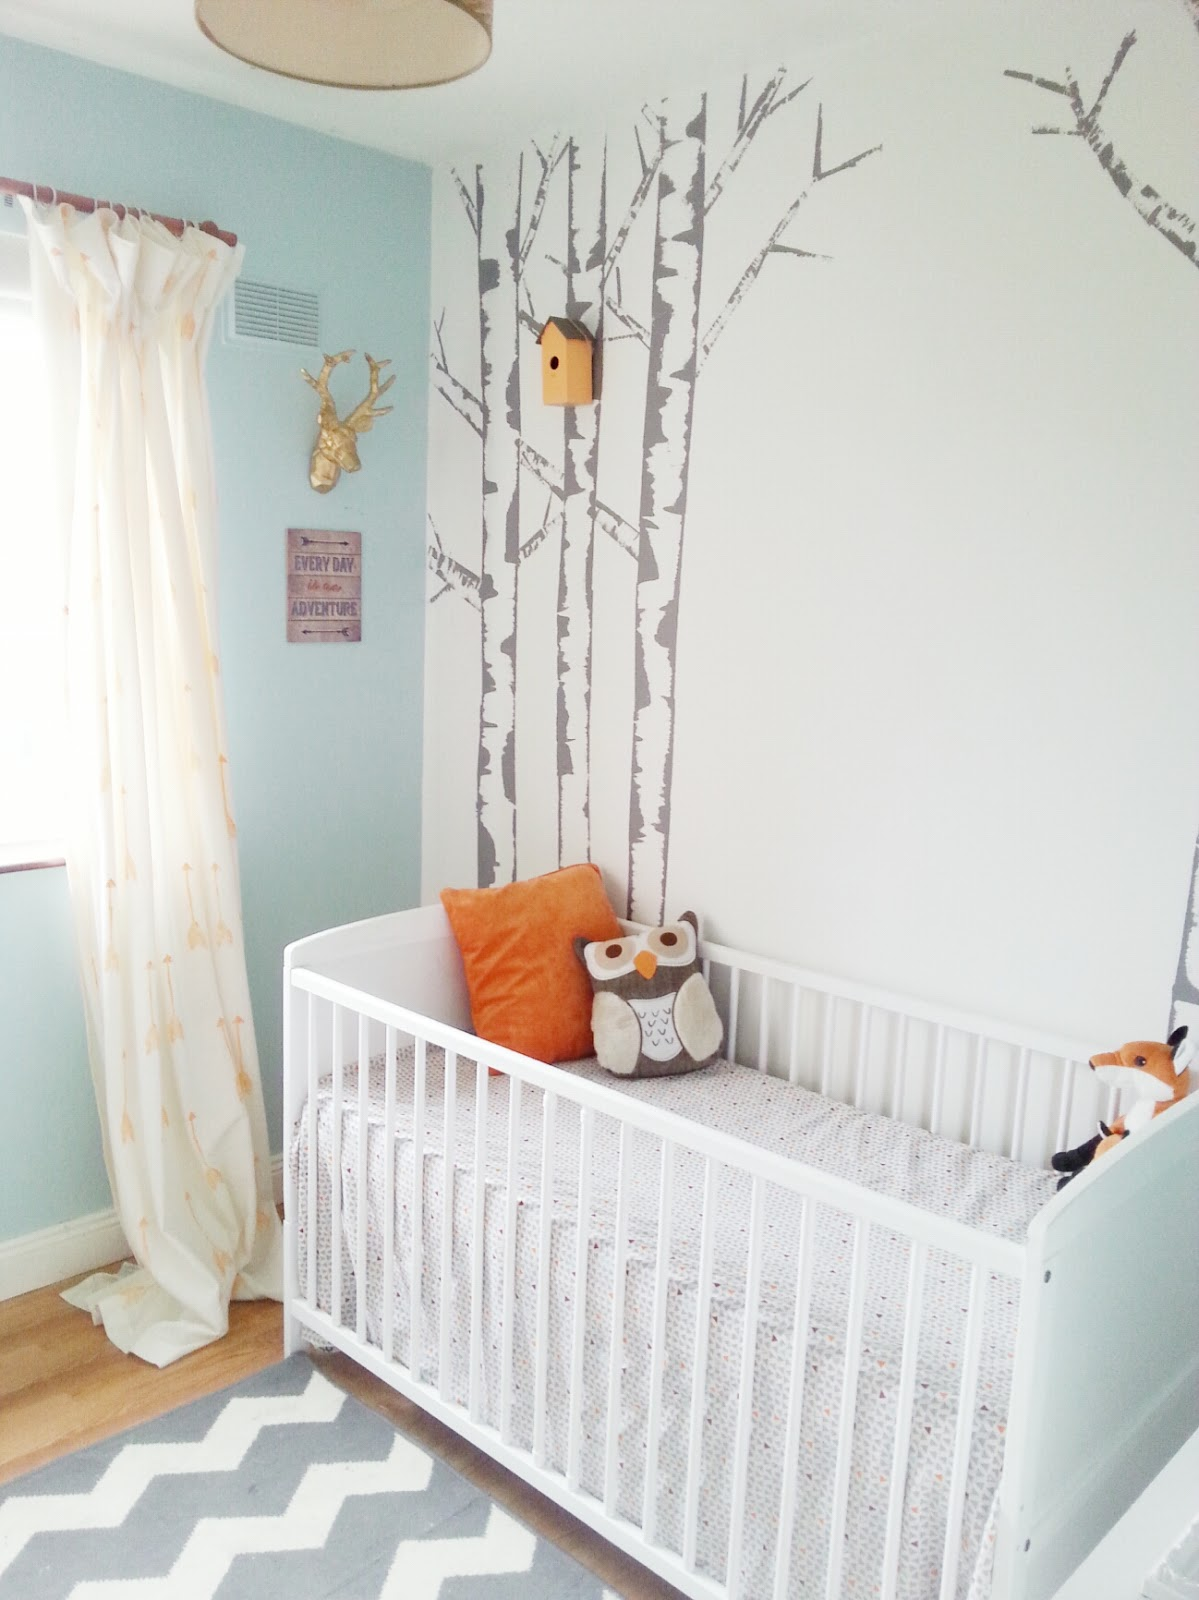 Max 39 s room reveal finally make do and diy for Diy birch tree wall mural